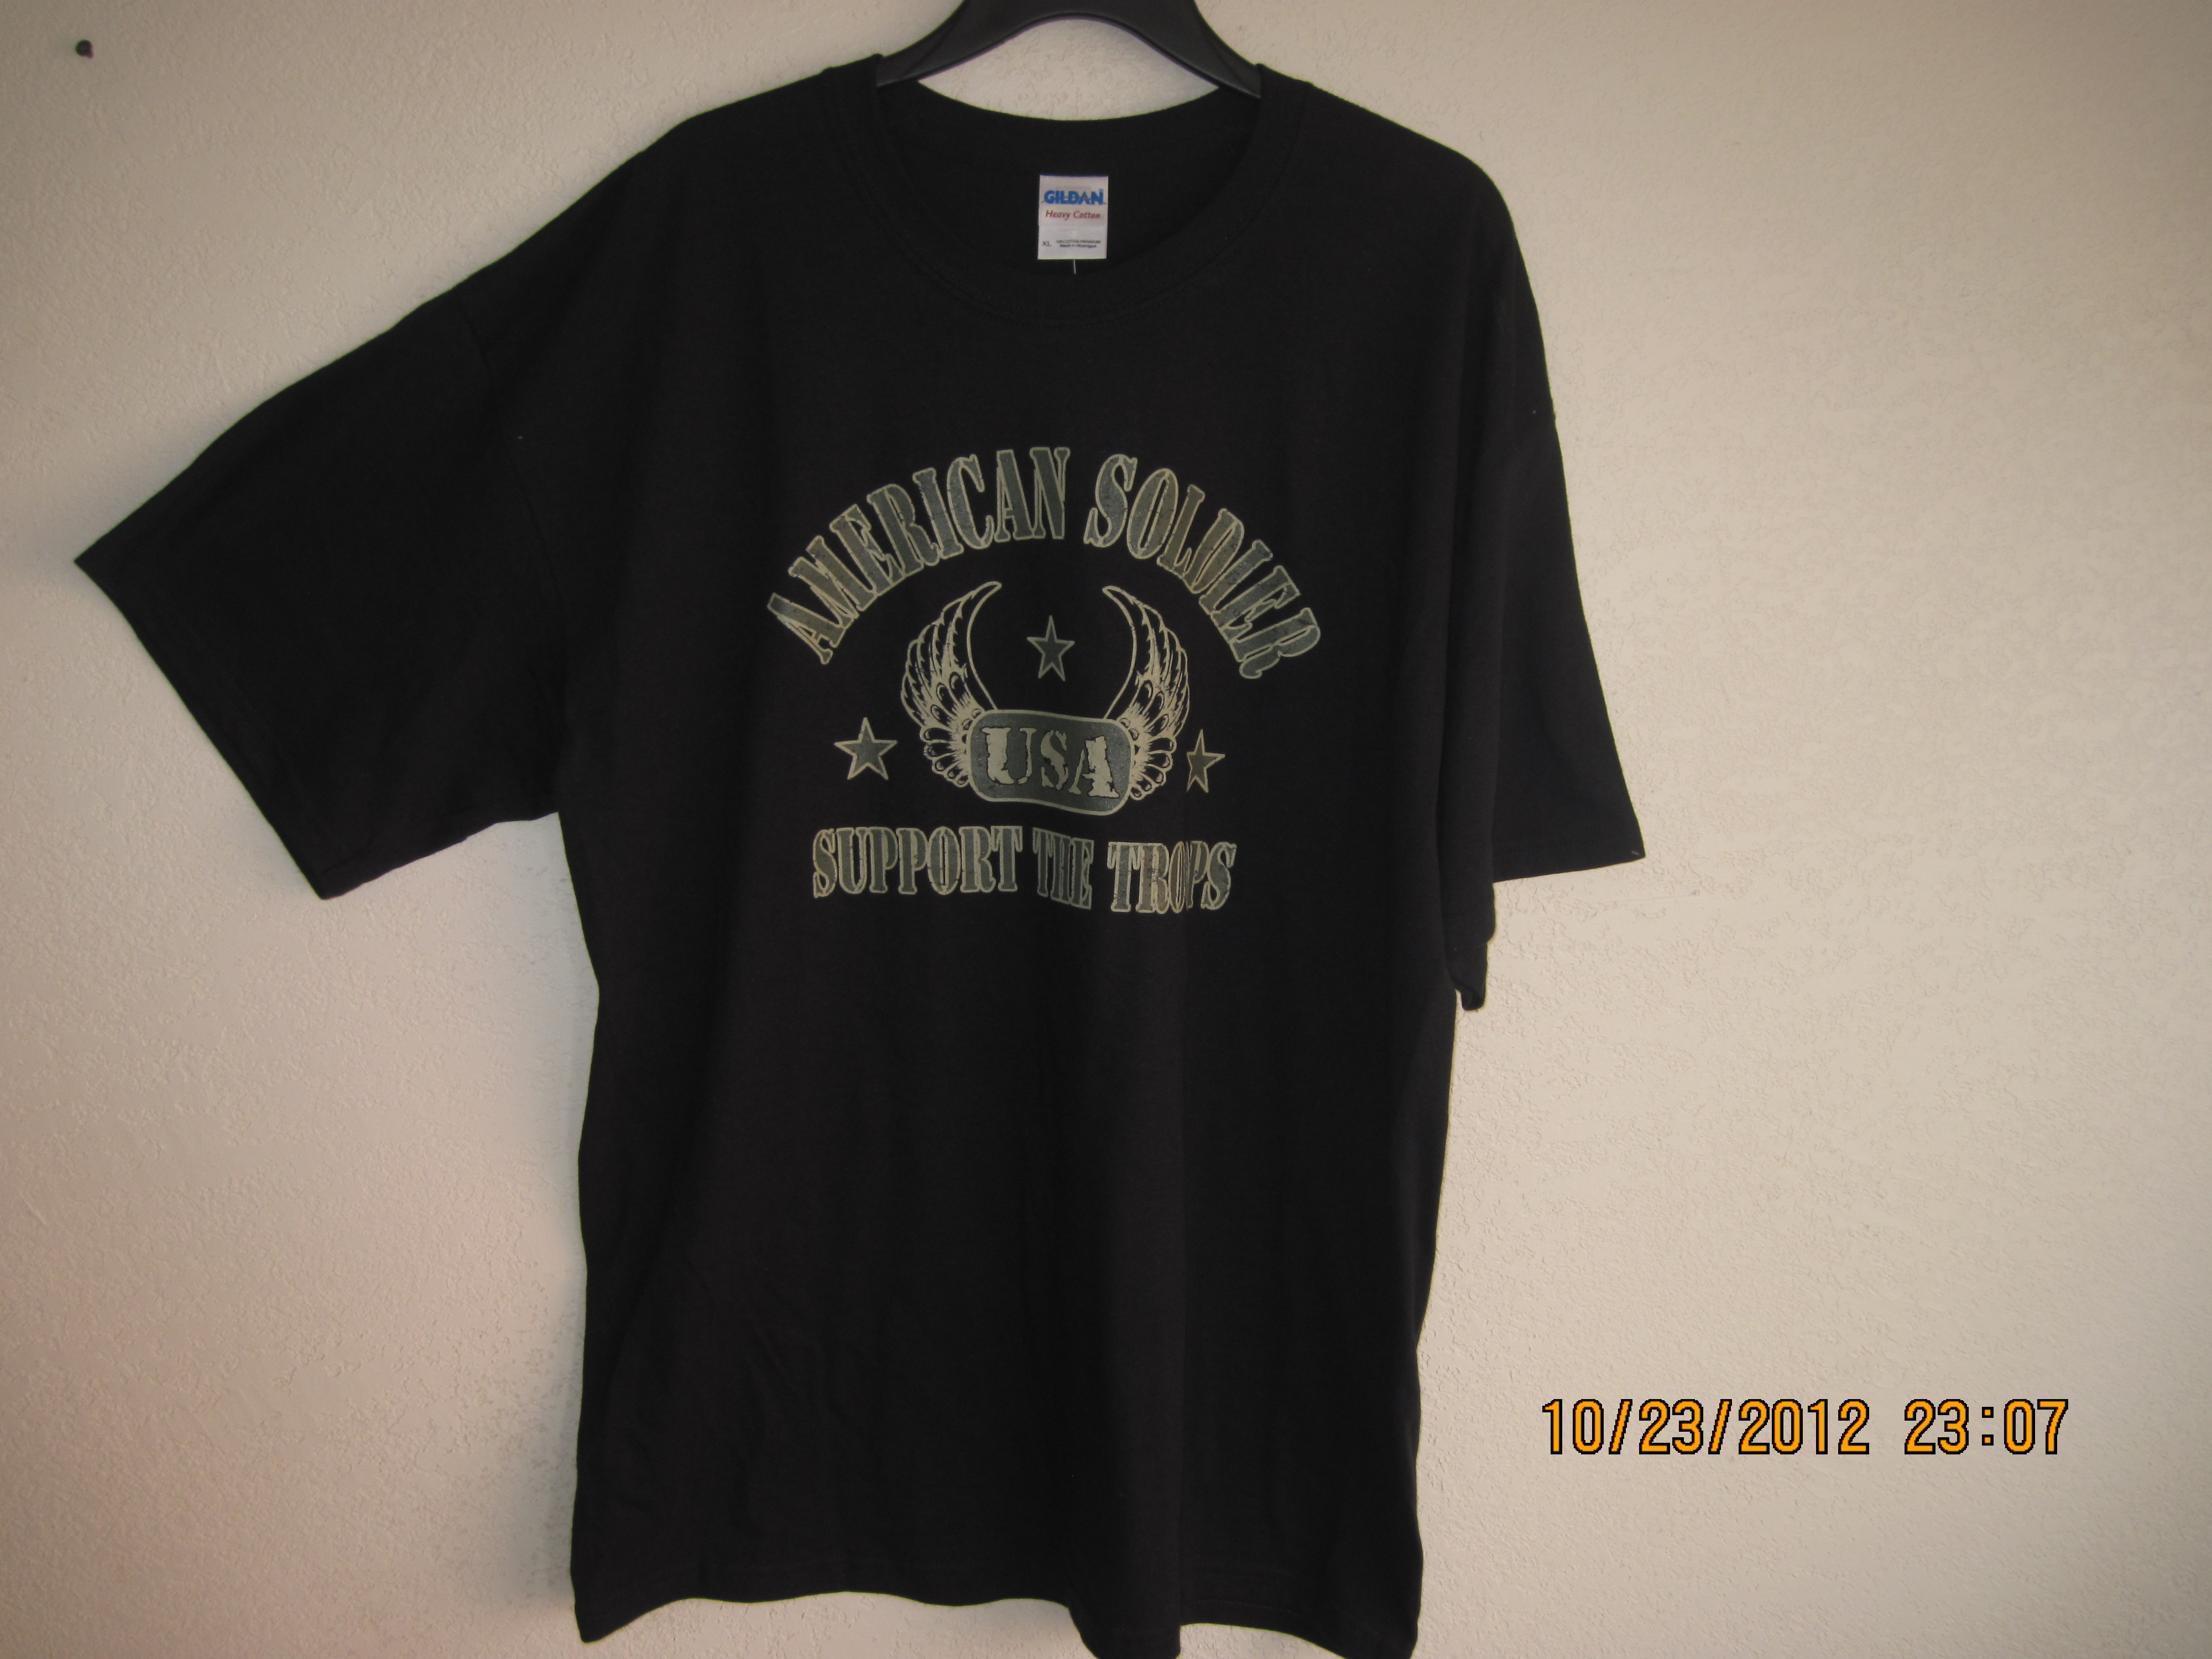 American Soldier Support The Troops Shirt Black & Gold